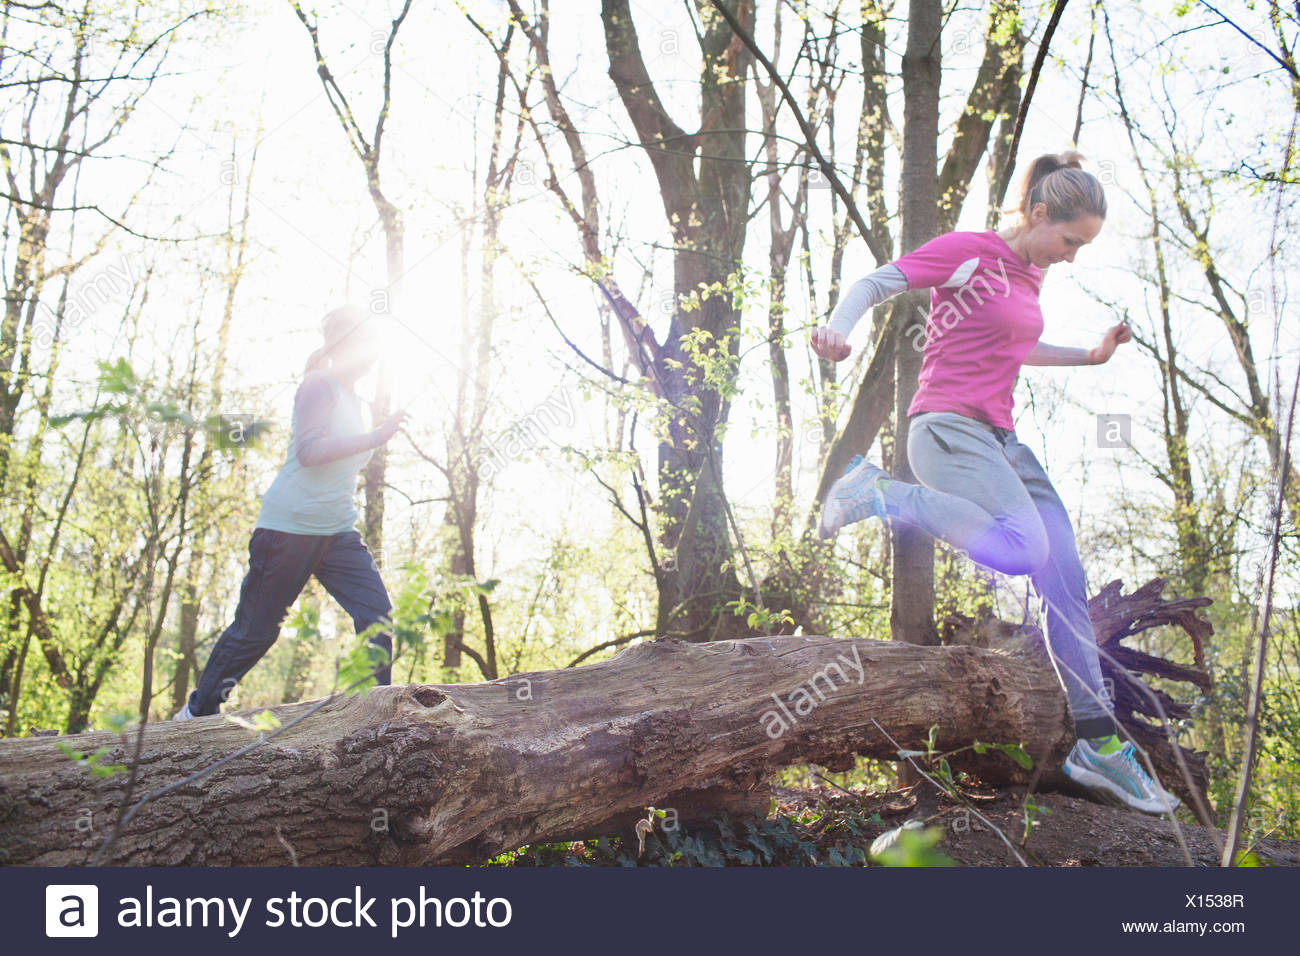 Women in forest jumping over fallen tree - Stock Image